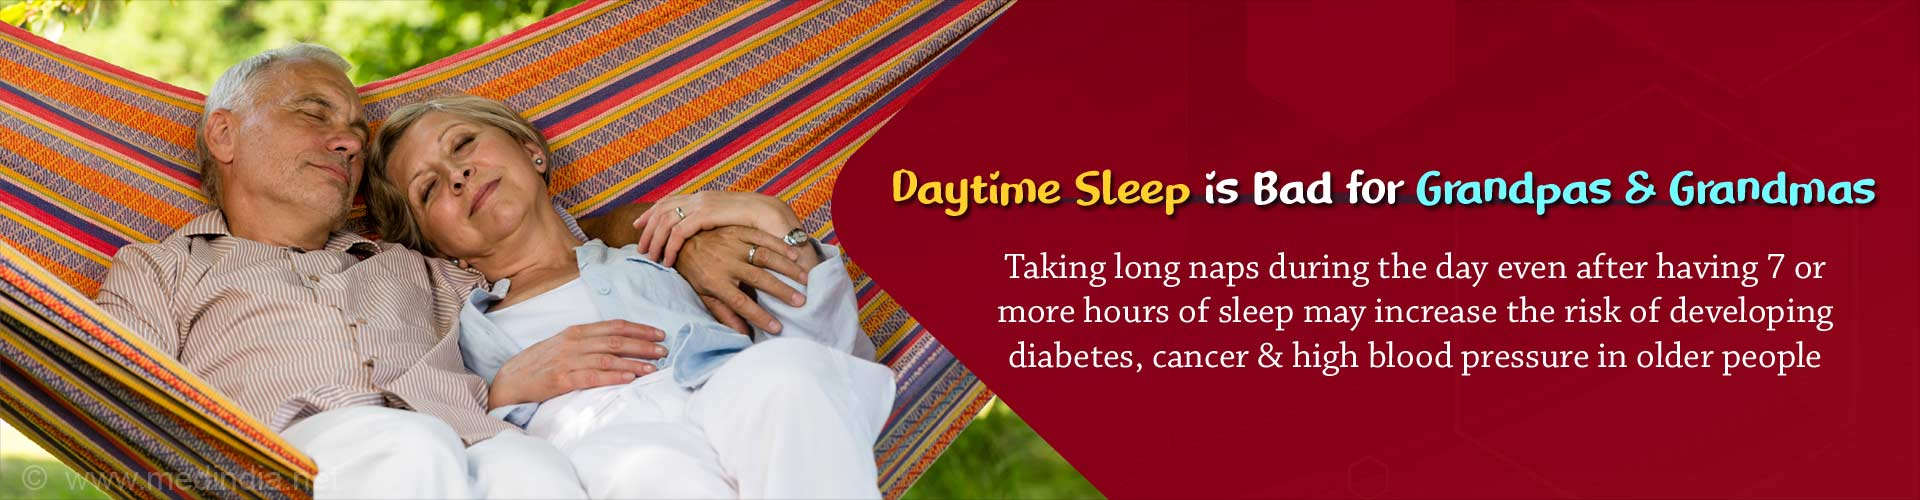 Sleeping During the Day May Up Diabetes, Cancer, High Blood Pressure Risk in Older People